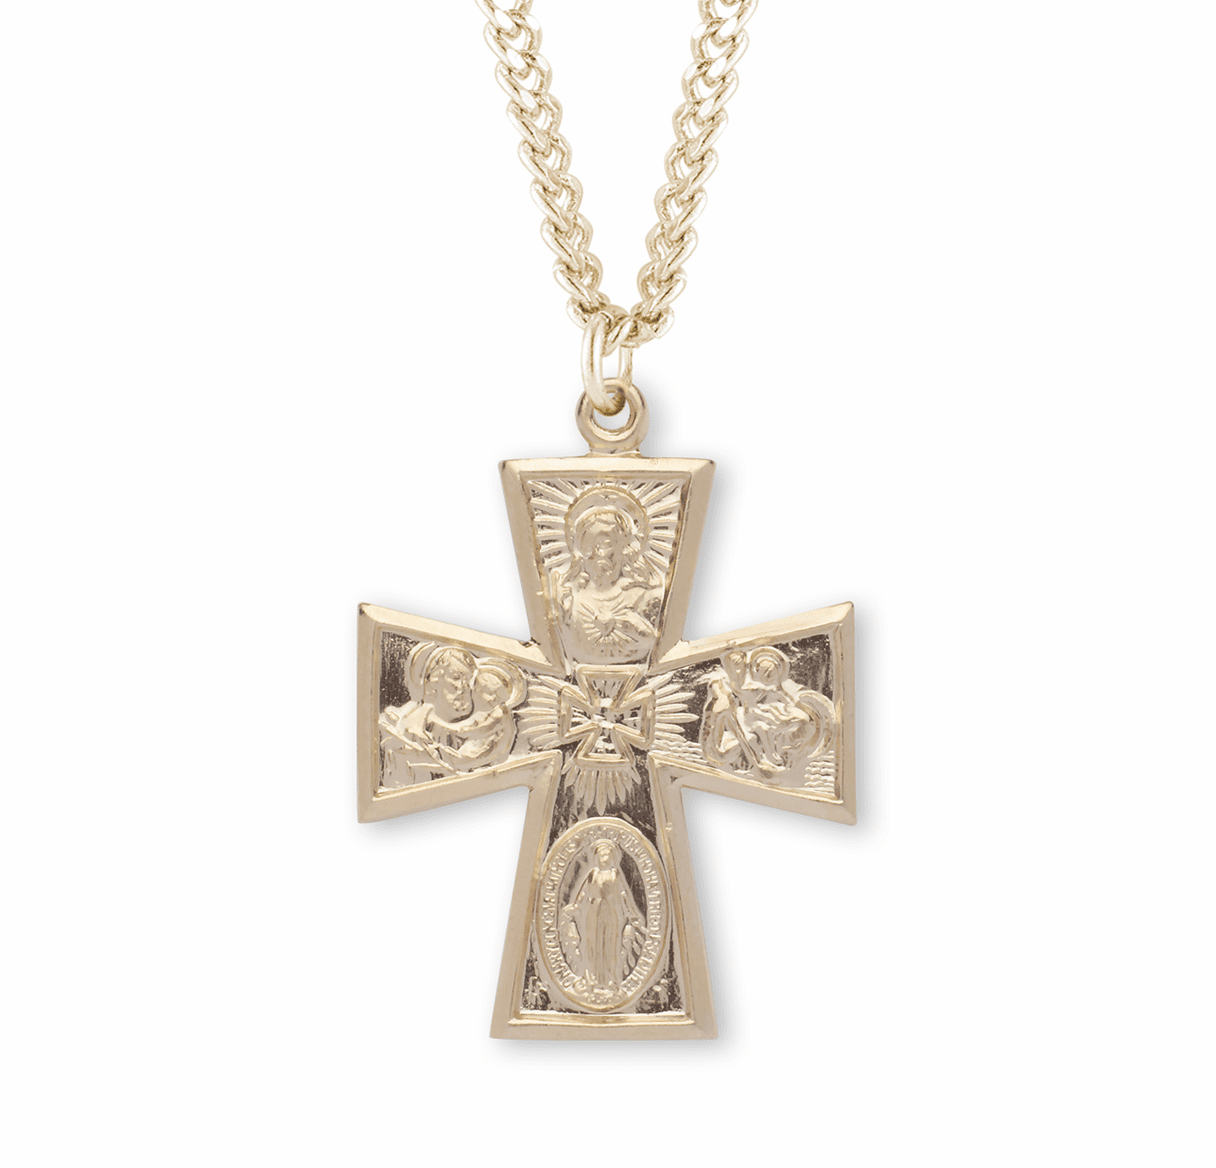 HMH Religious Gold/Sterling Gothic 4-Way Cross Necklace w/Cross Center